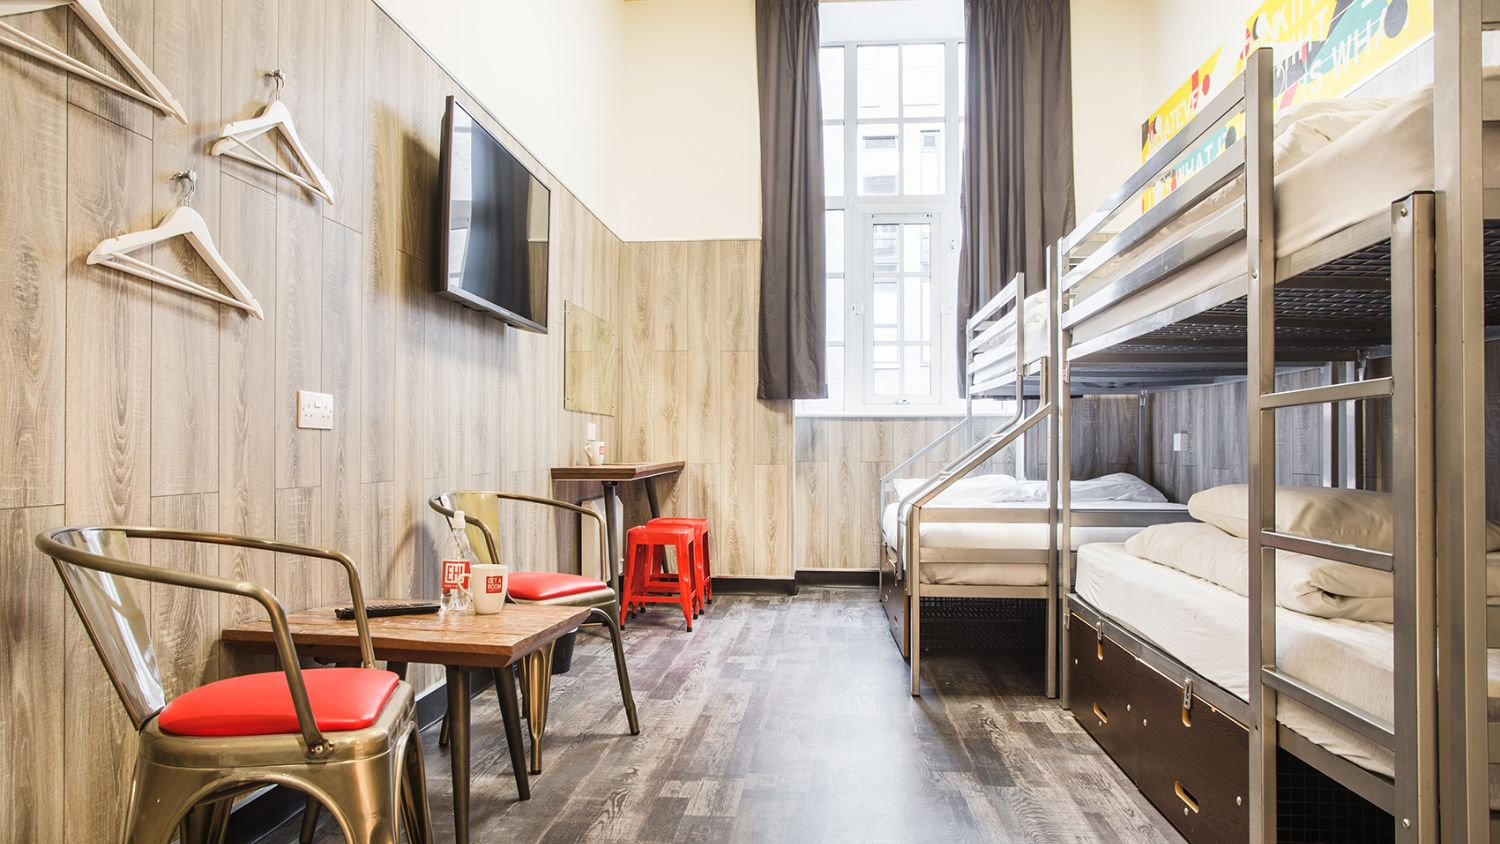 Single Private Room at Euro Hostel Newcastle